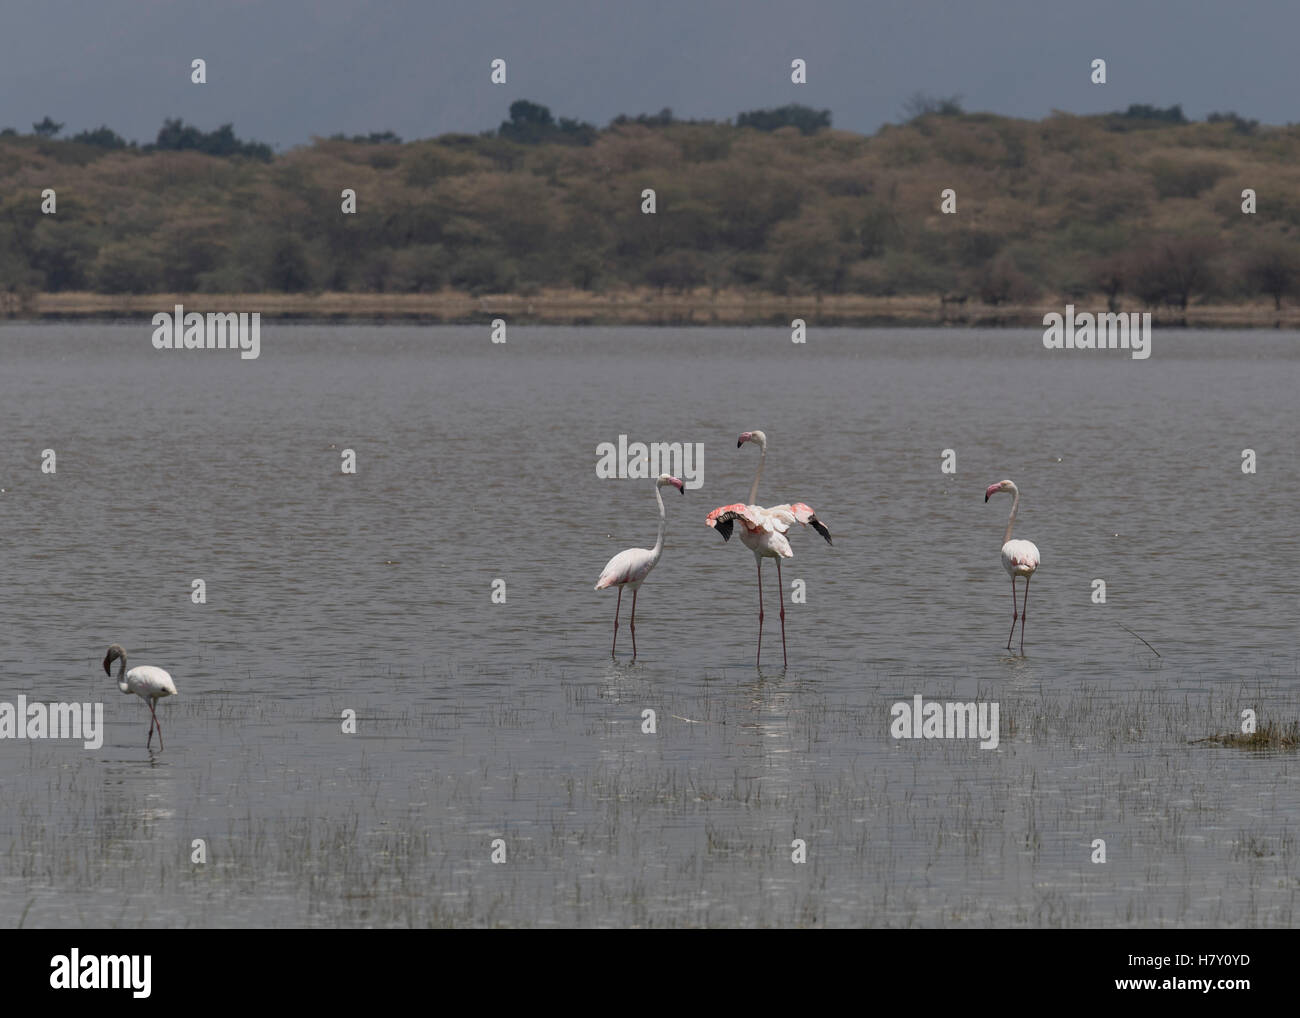 Greater and Lesser Flamingo at Lake Manyara, Tanzania - Stock Image